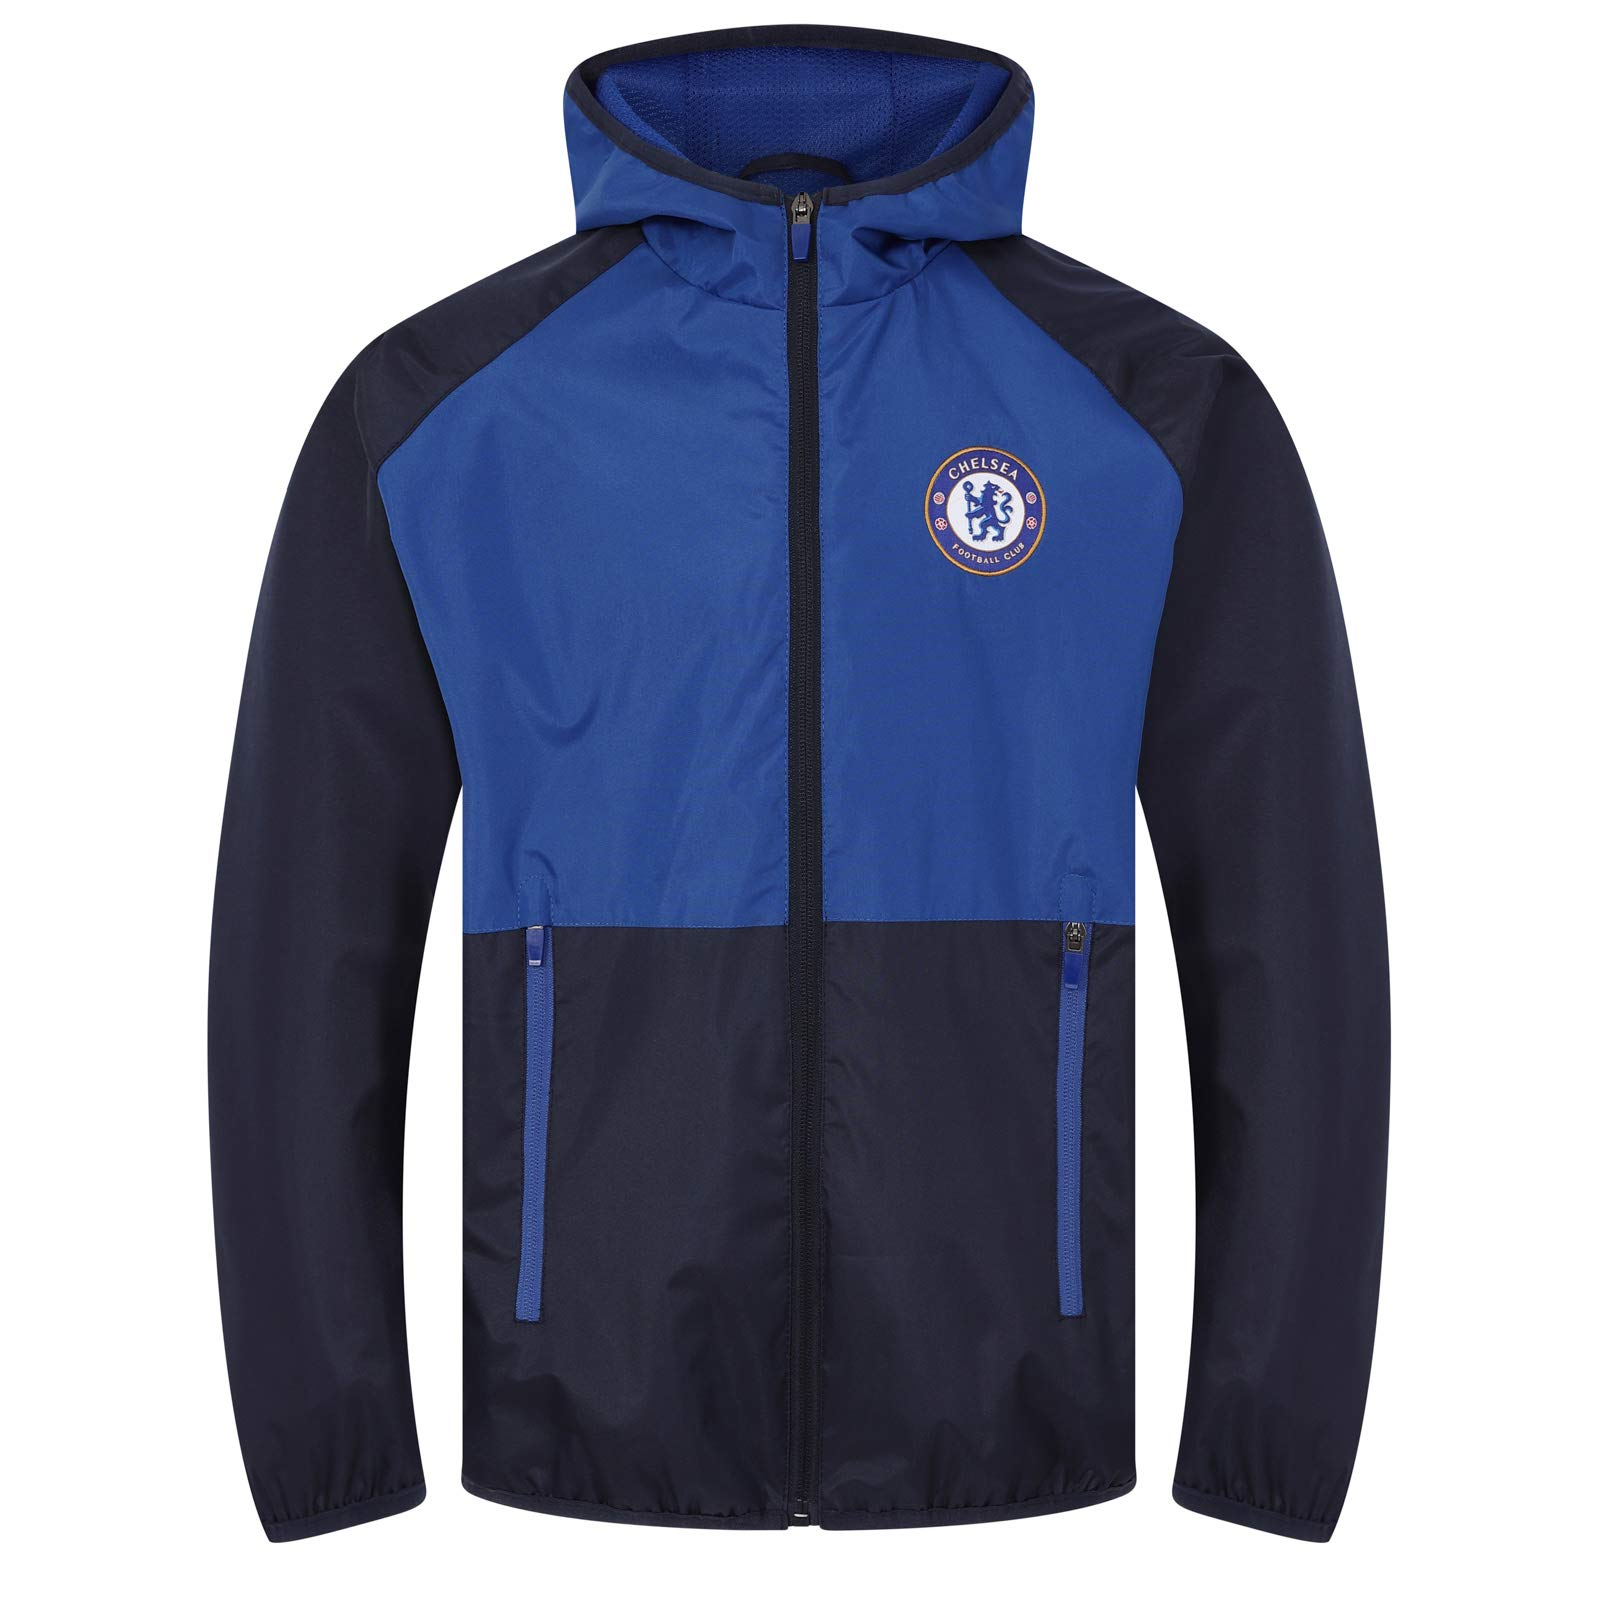 Chelsea FC Official Soccer Gift Boys Shower Jacket Windbreaker Navy 12-13 Yrs by Chelsea F.C.